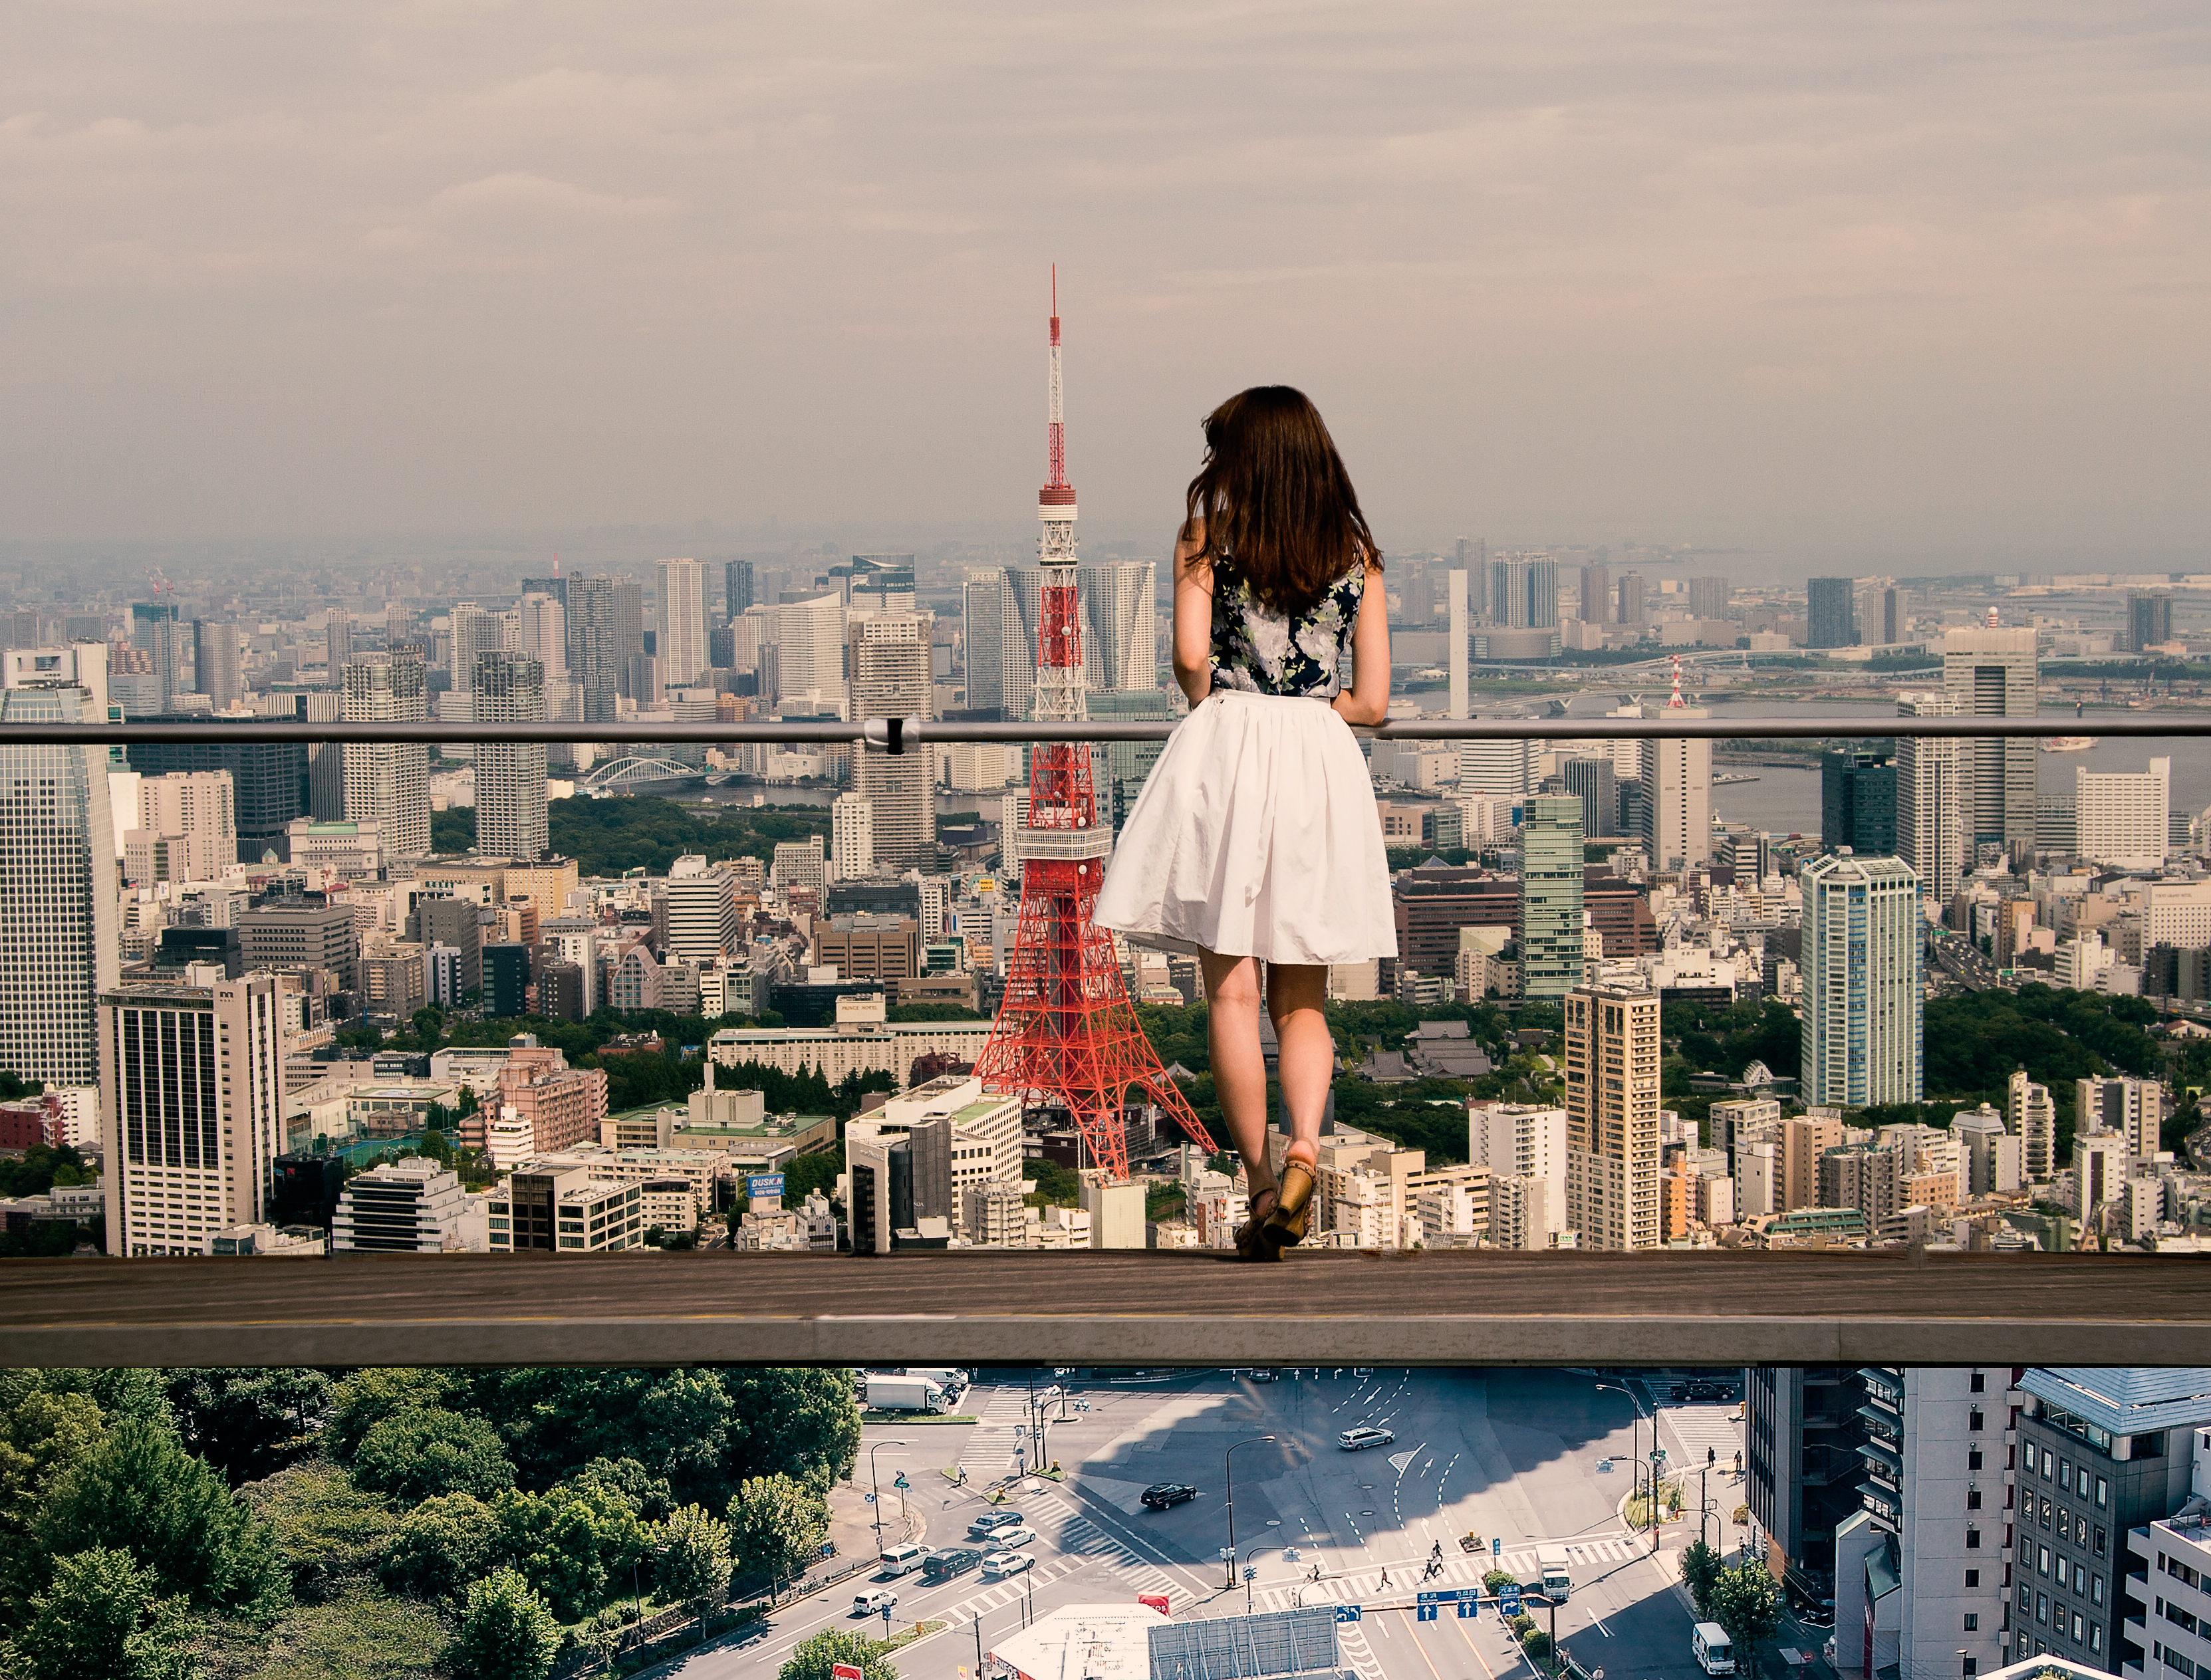 Lady Tokyo Tower